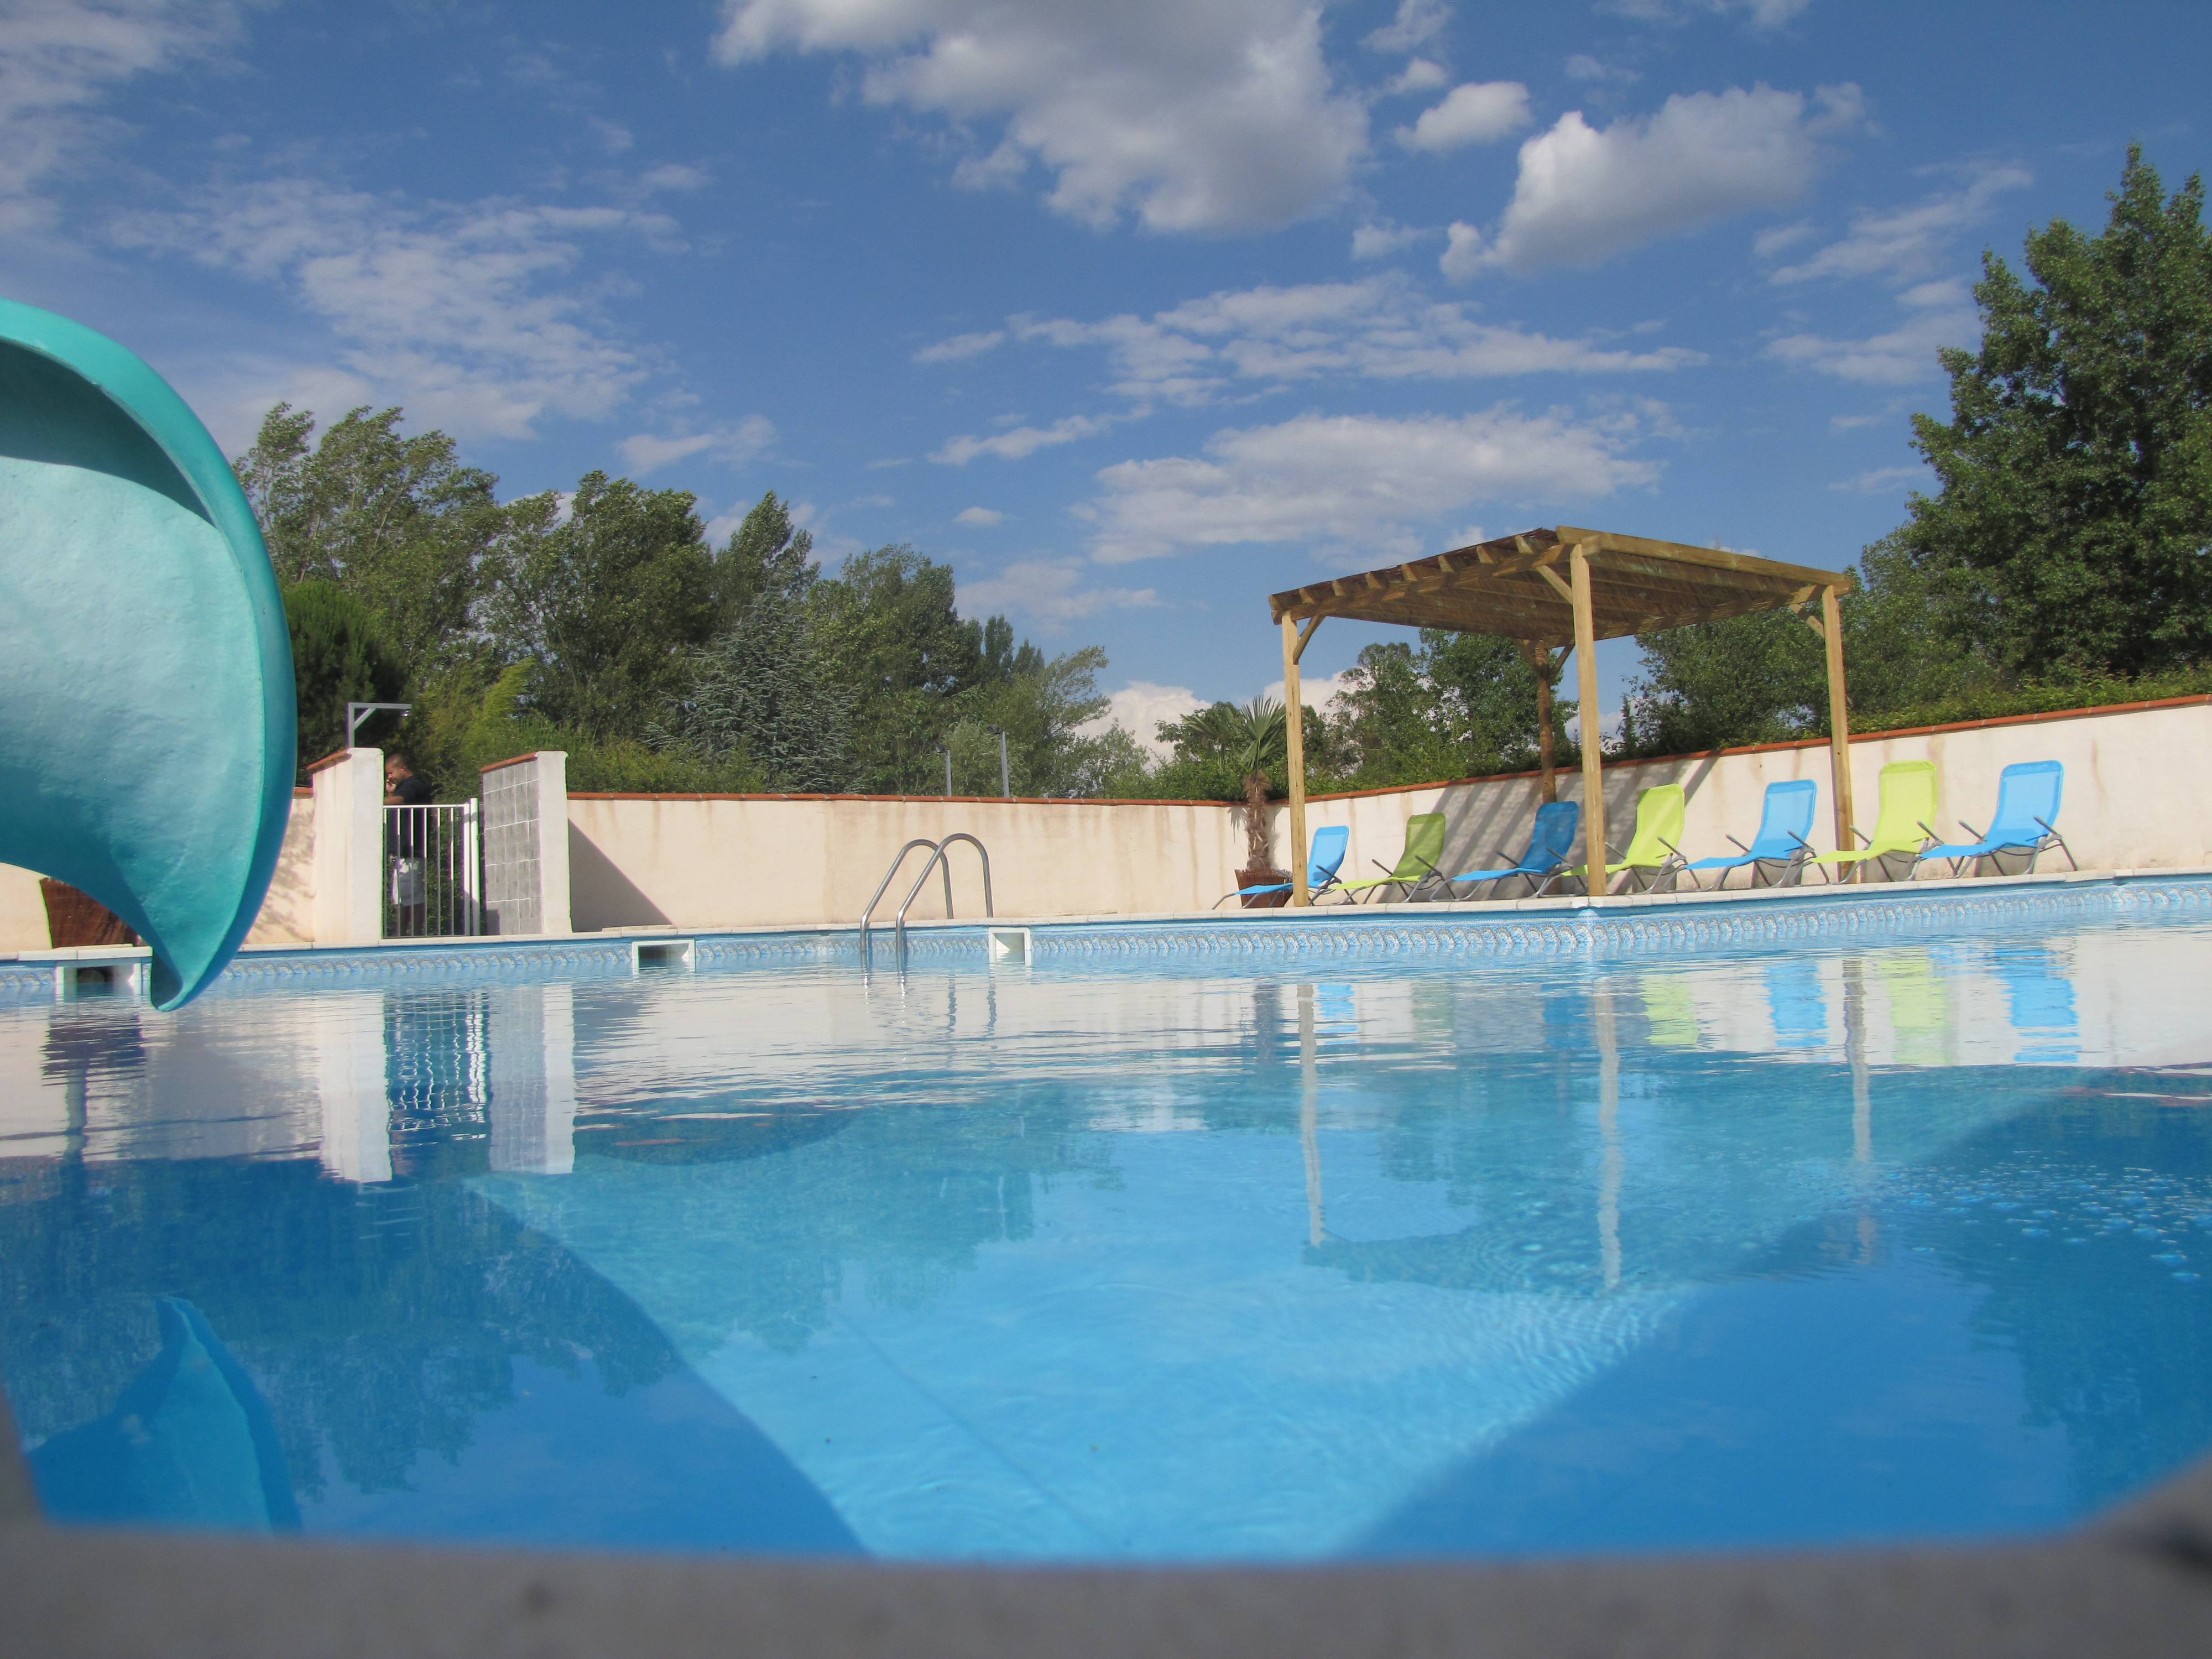 Vacance camping sud ouest